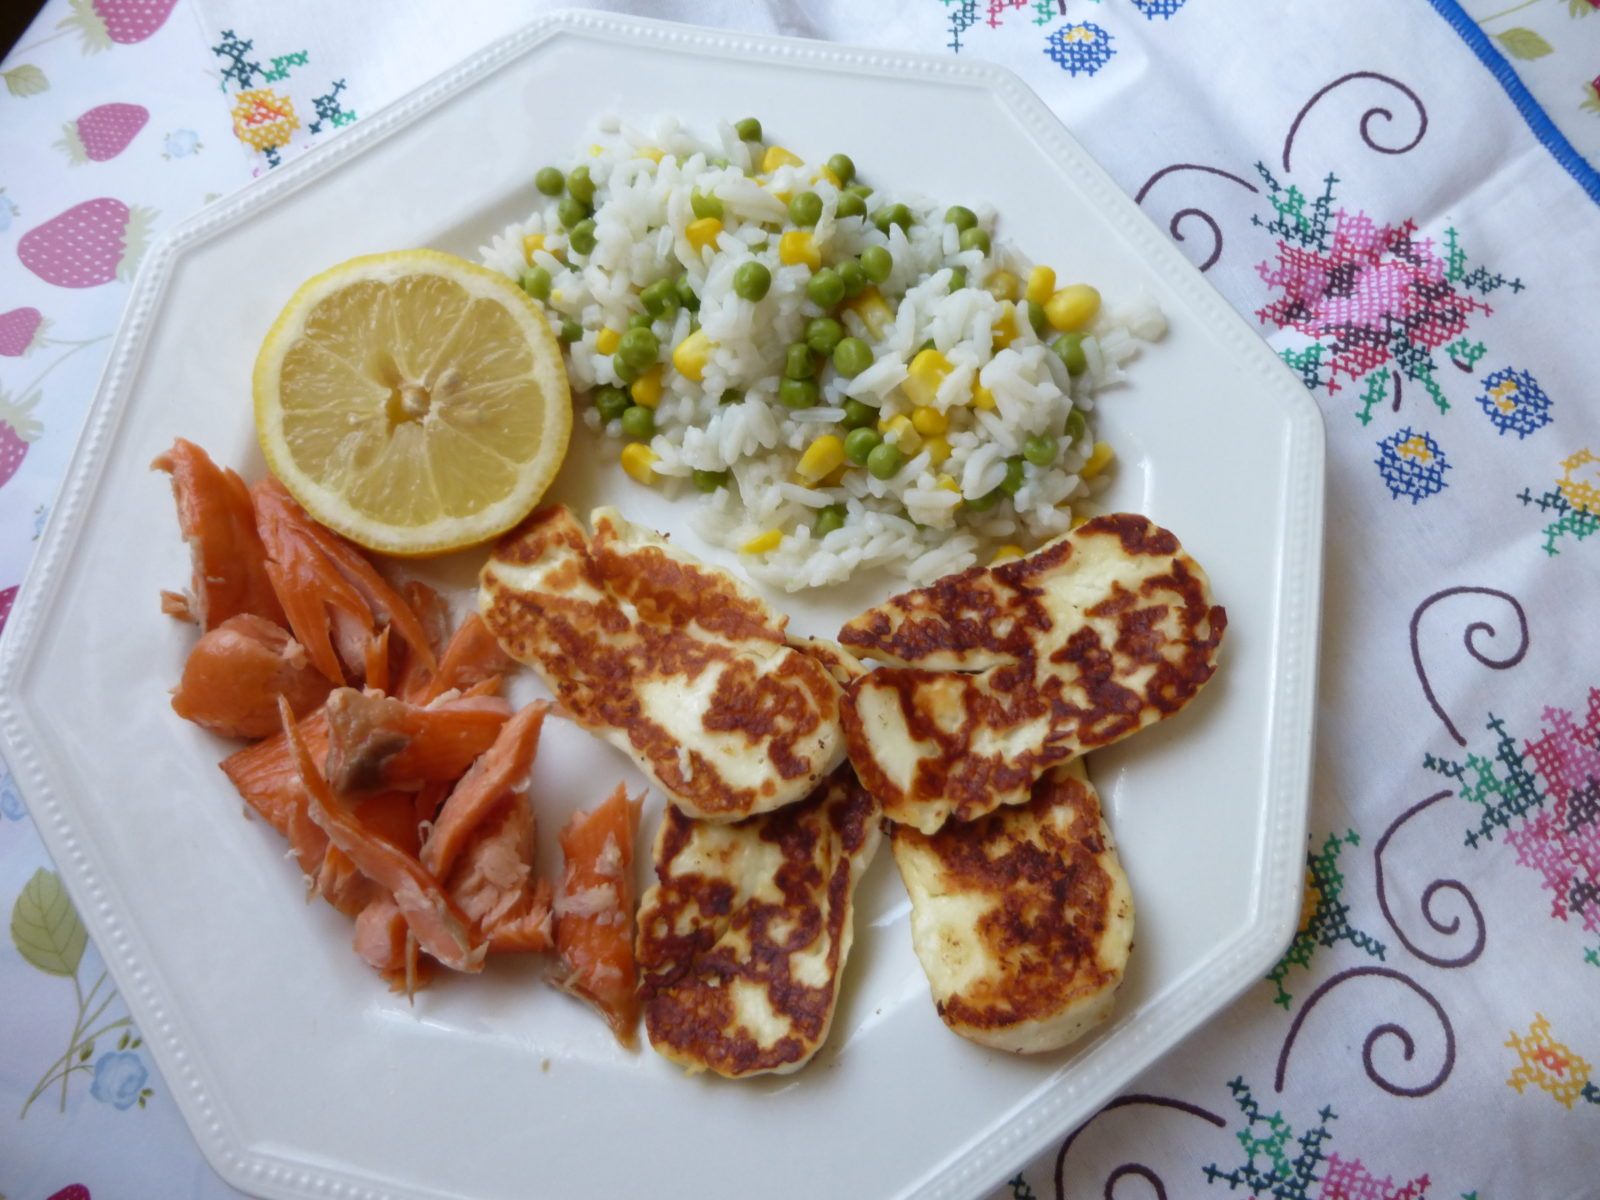 15 minute meals: Honey roast salmon with grilled halloumi and rice!